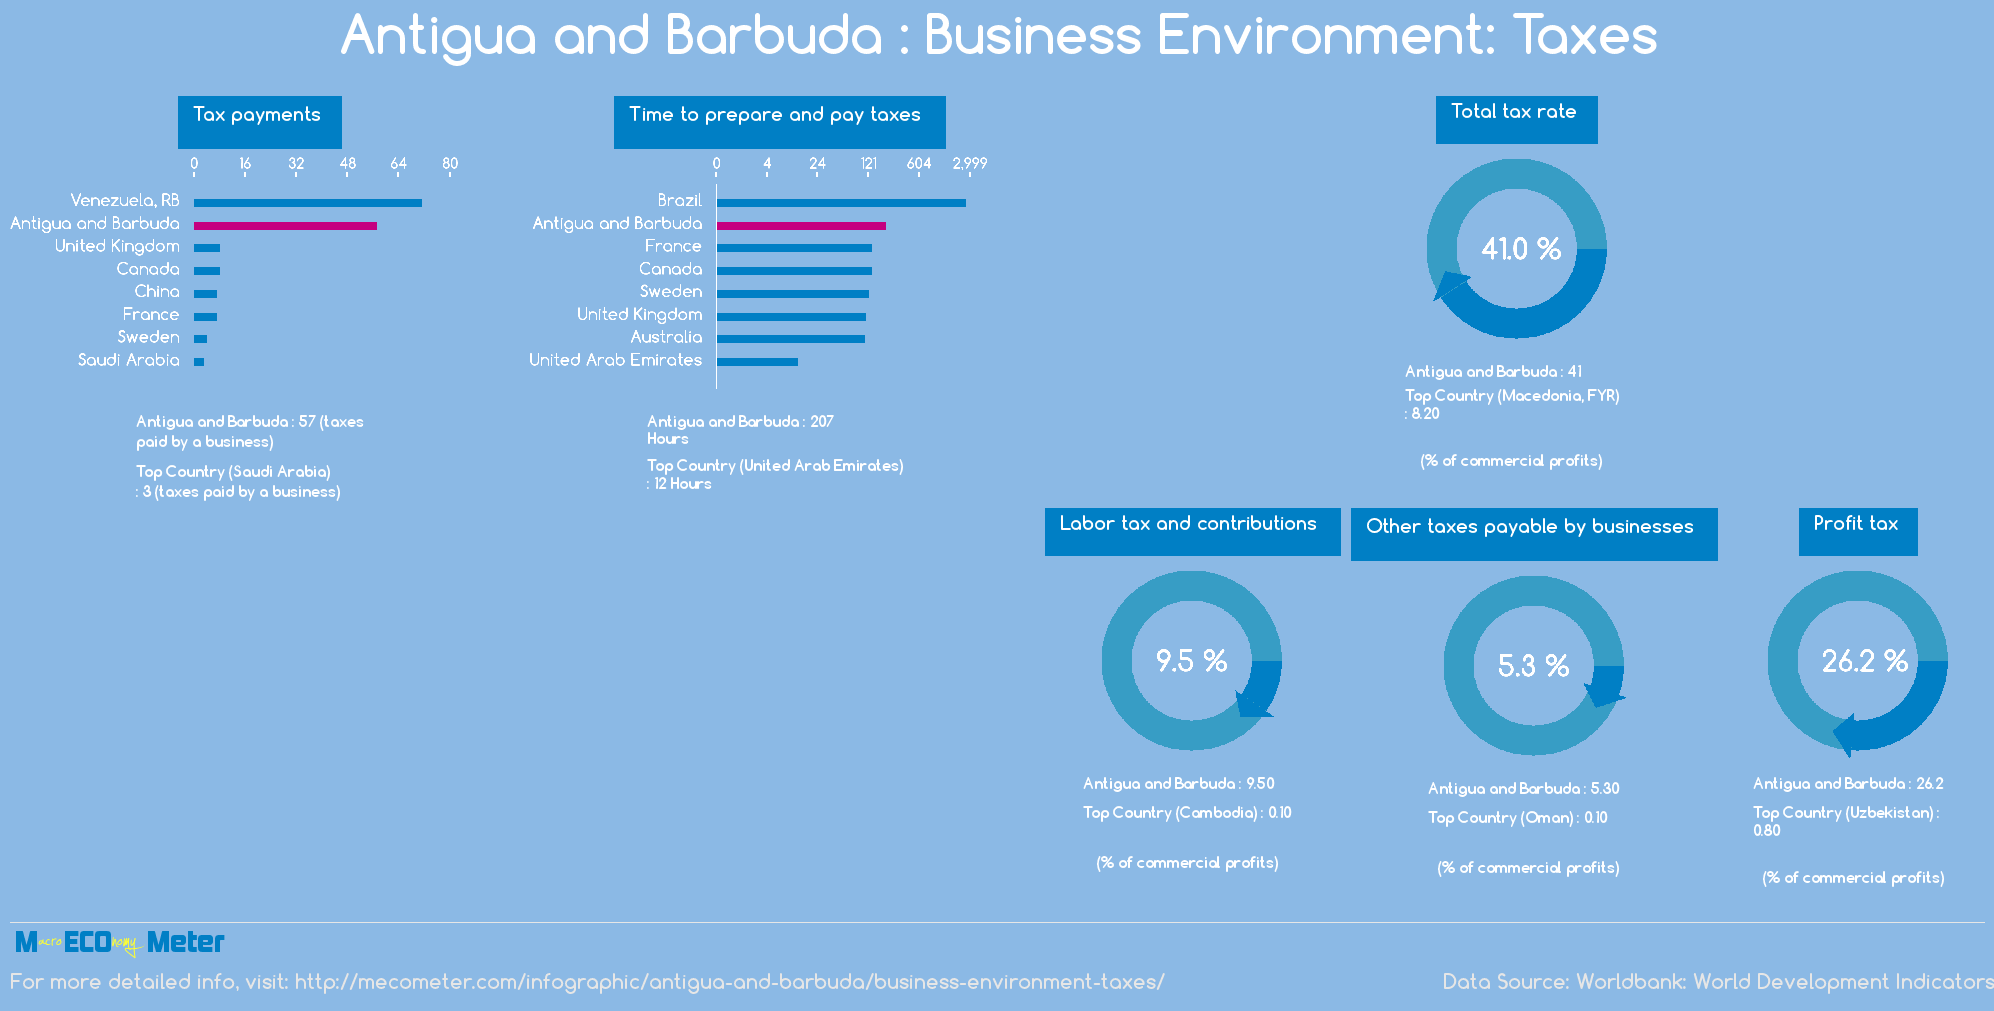 Antigua and Barbuda : Business Environment: Taxes